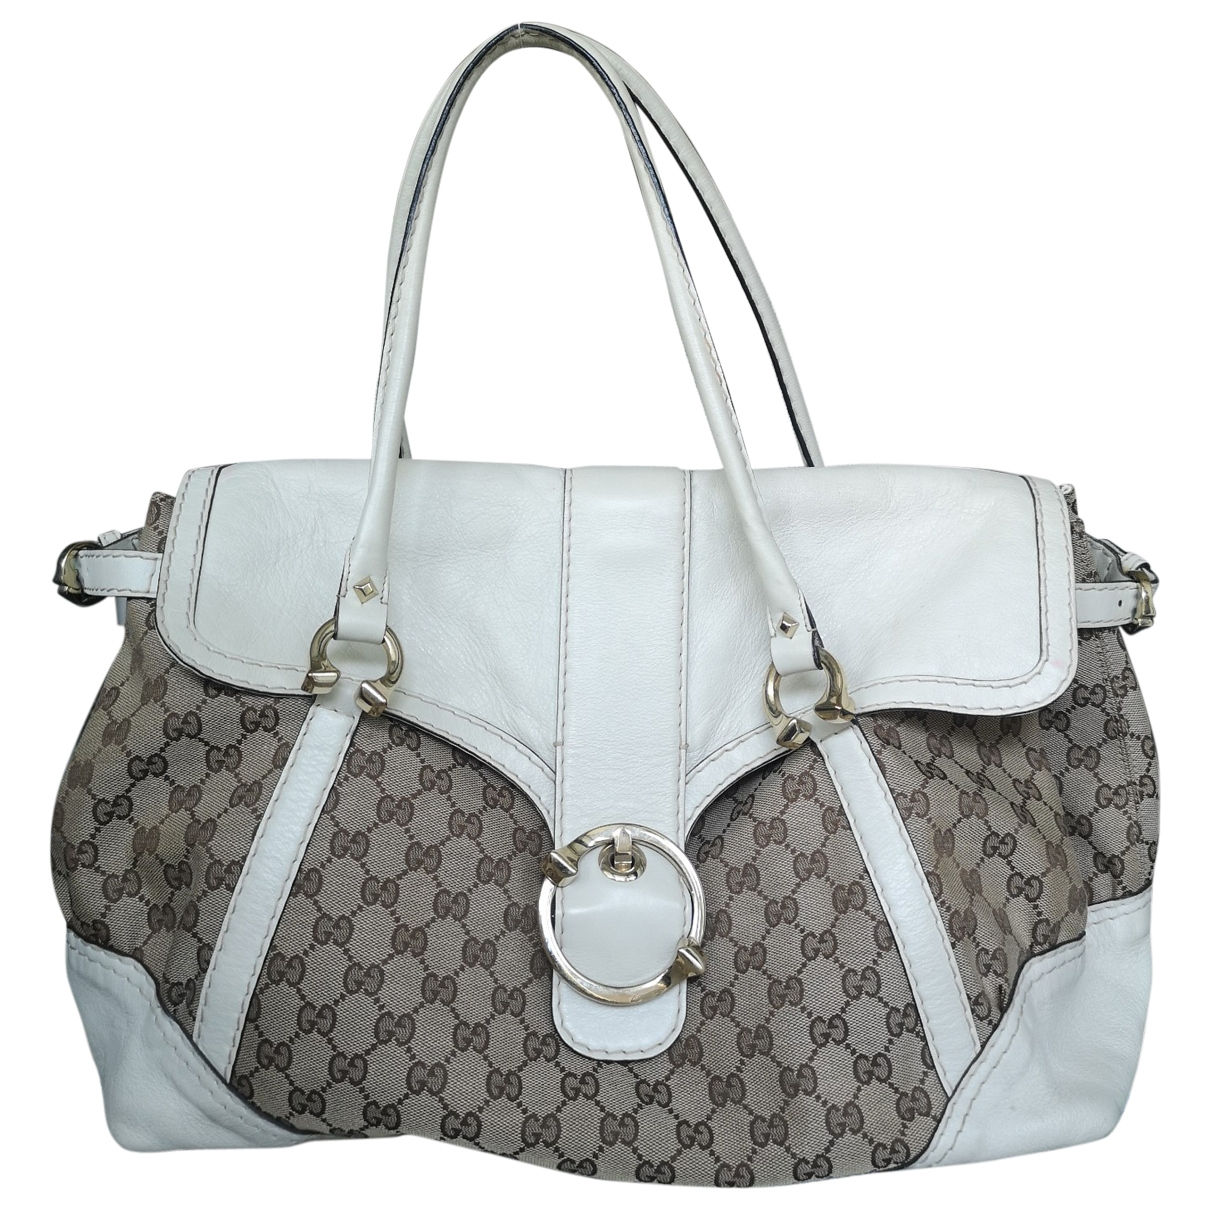 Gucci \N White Cloth handbag for Women \N